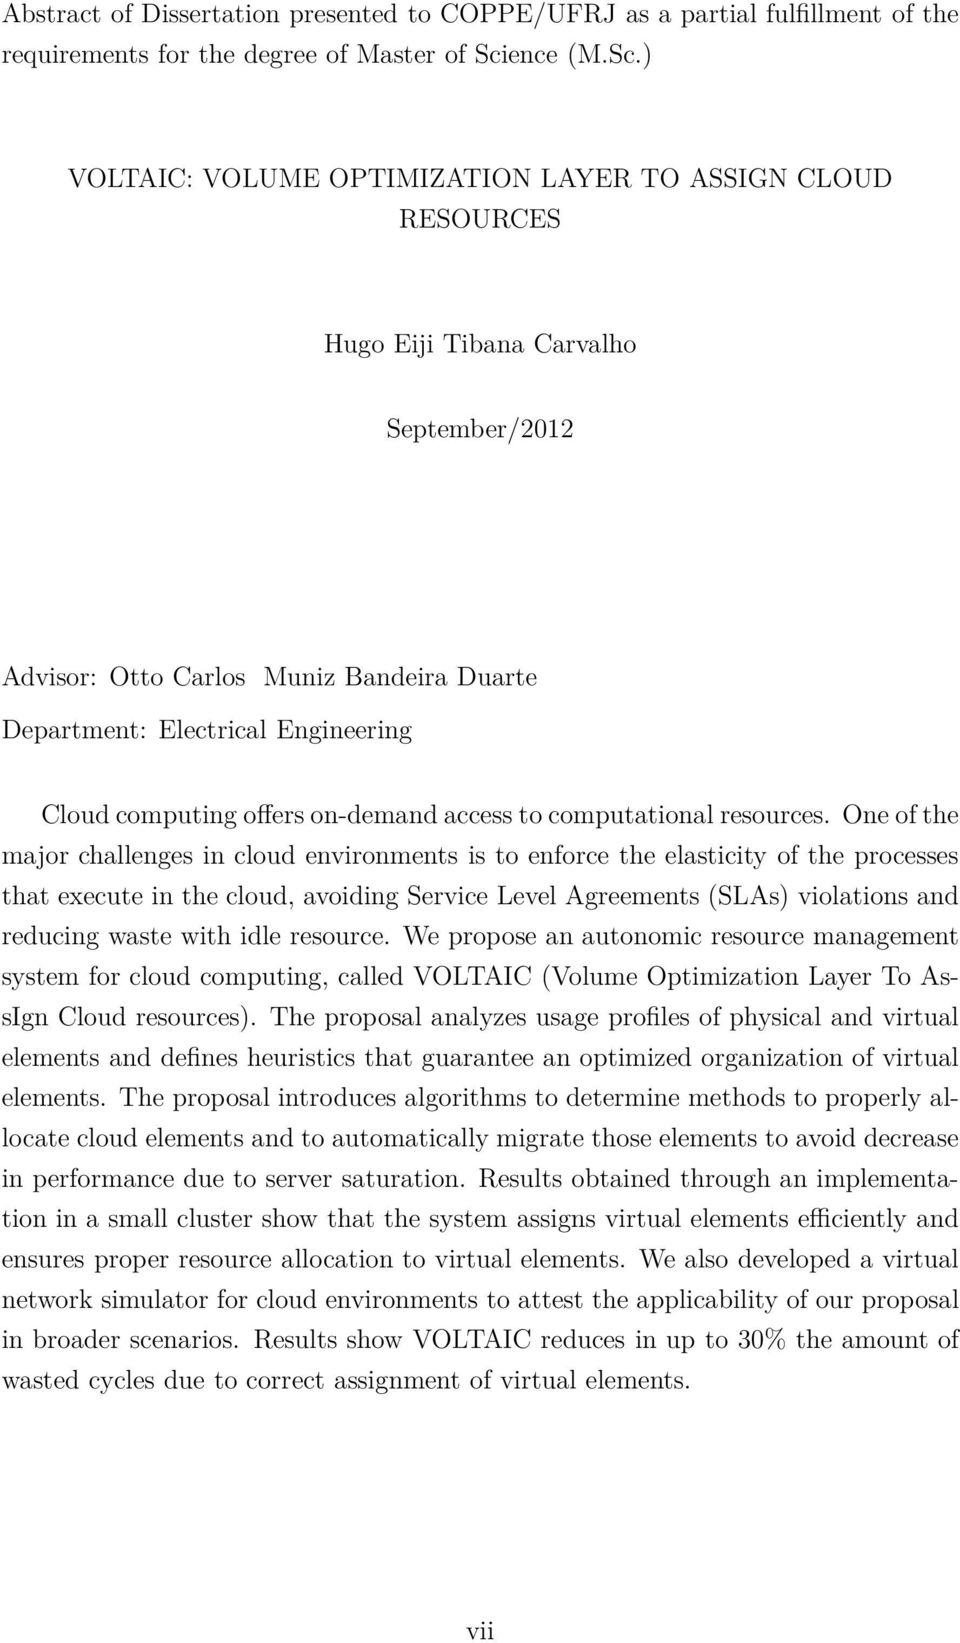 ) VOLTAIC: VOLUME OPTIMIZATION LAYER TO ASSIGN CLOUD RESOURCES Hugo Eiji Tibana Carvalho September/2012 Advisor: Otto Carlos Muniz Bandeira Duarte Department: Electrical Engineering Cloud computing